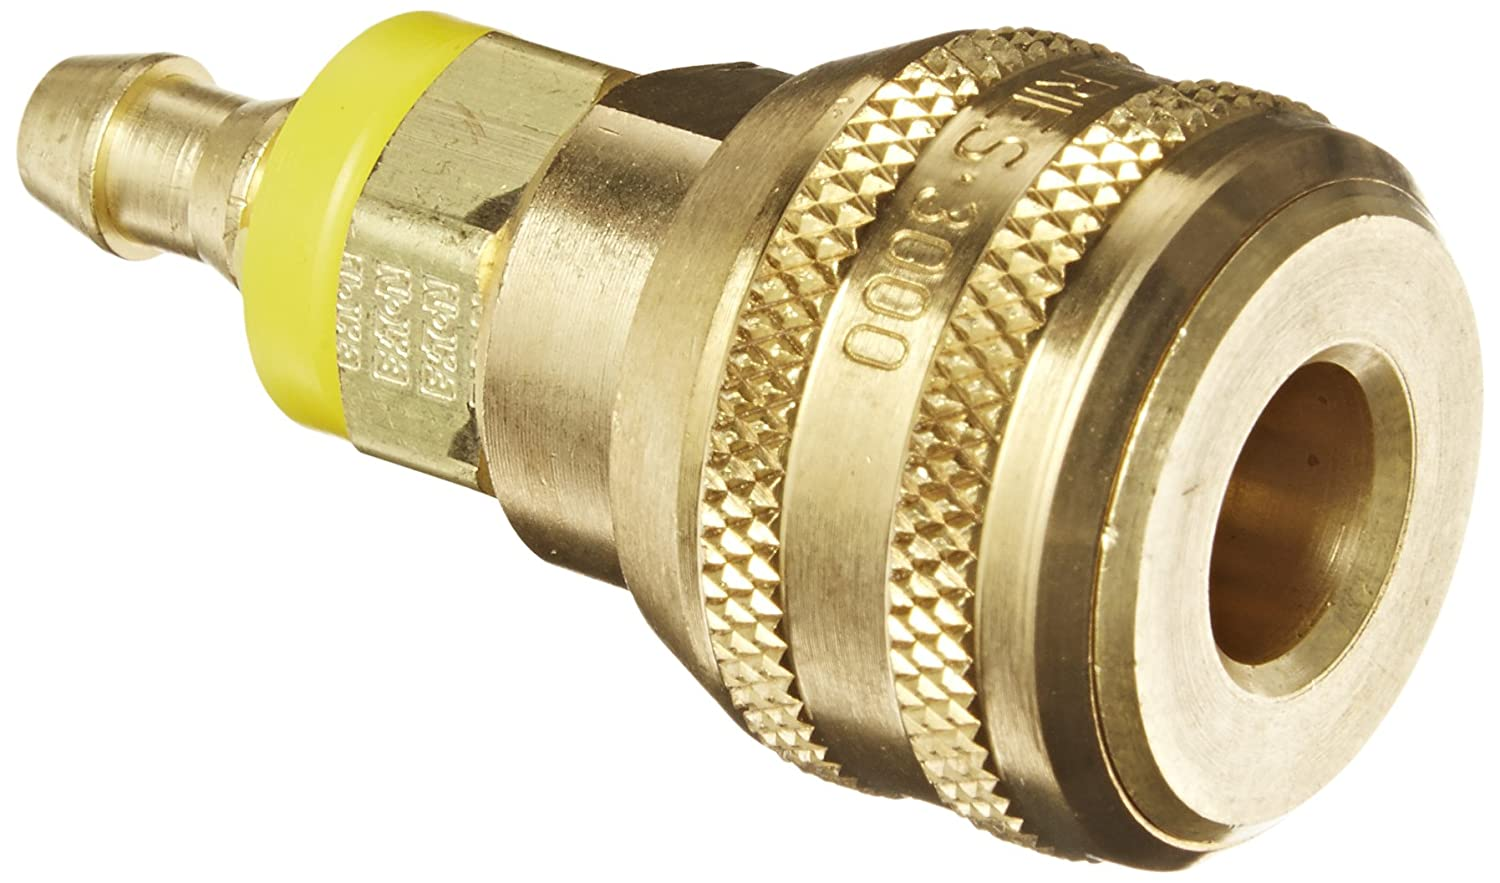 Socket 1//4 Hose ID Eaton Hansen 3600P Brass ISO-B Interchange Pin Lock Pneumatic Fitting with Push-On Style Hose 1//4 Body